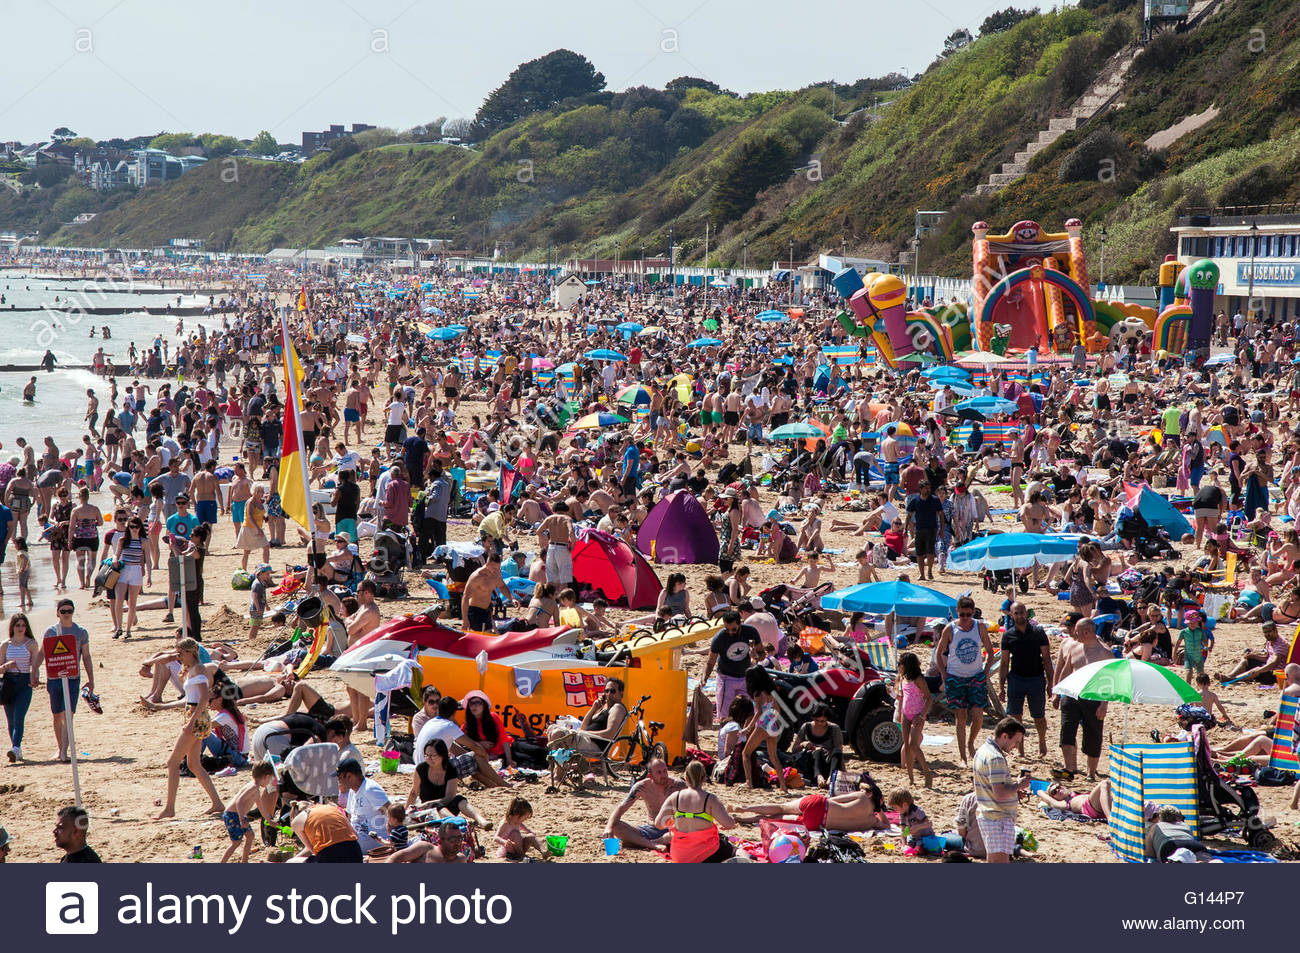 Bournemouth, Dorset, England. 8th May 2016. Sunny and hot weather attracts thousands of people to the beach in Bournemouth, Stock Photo